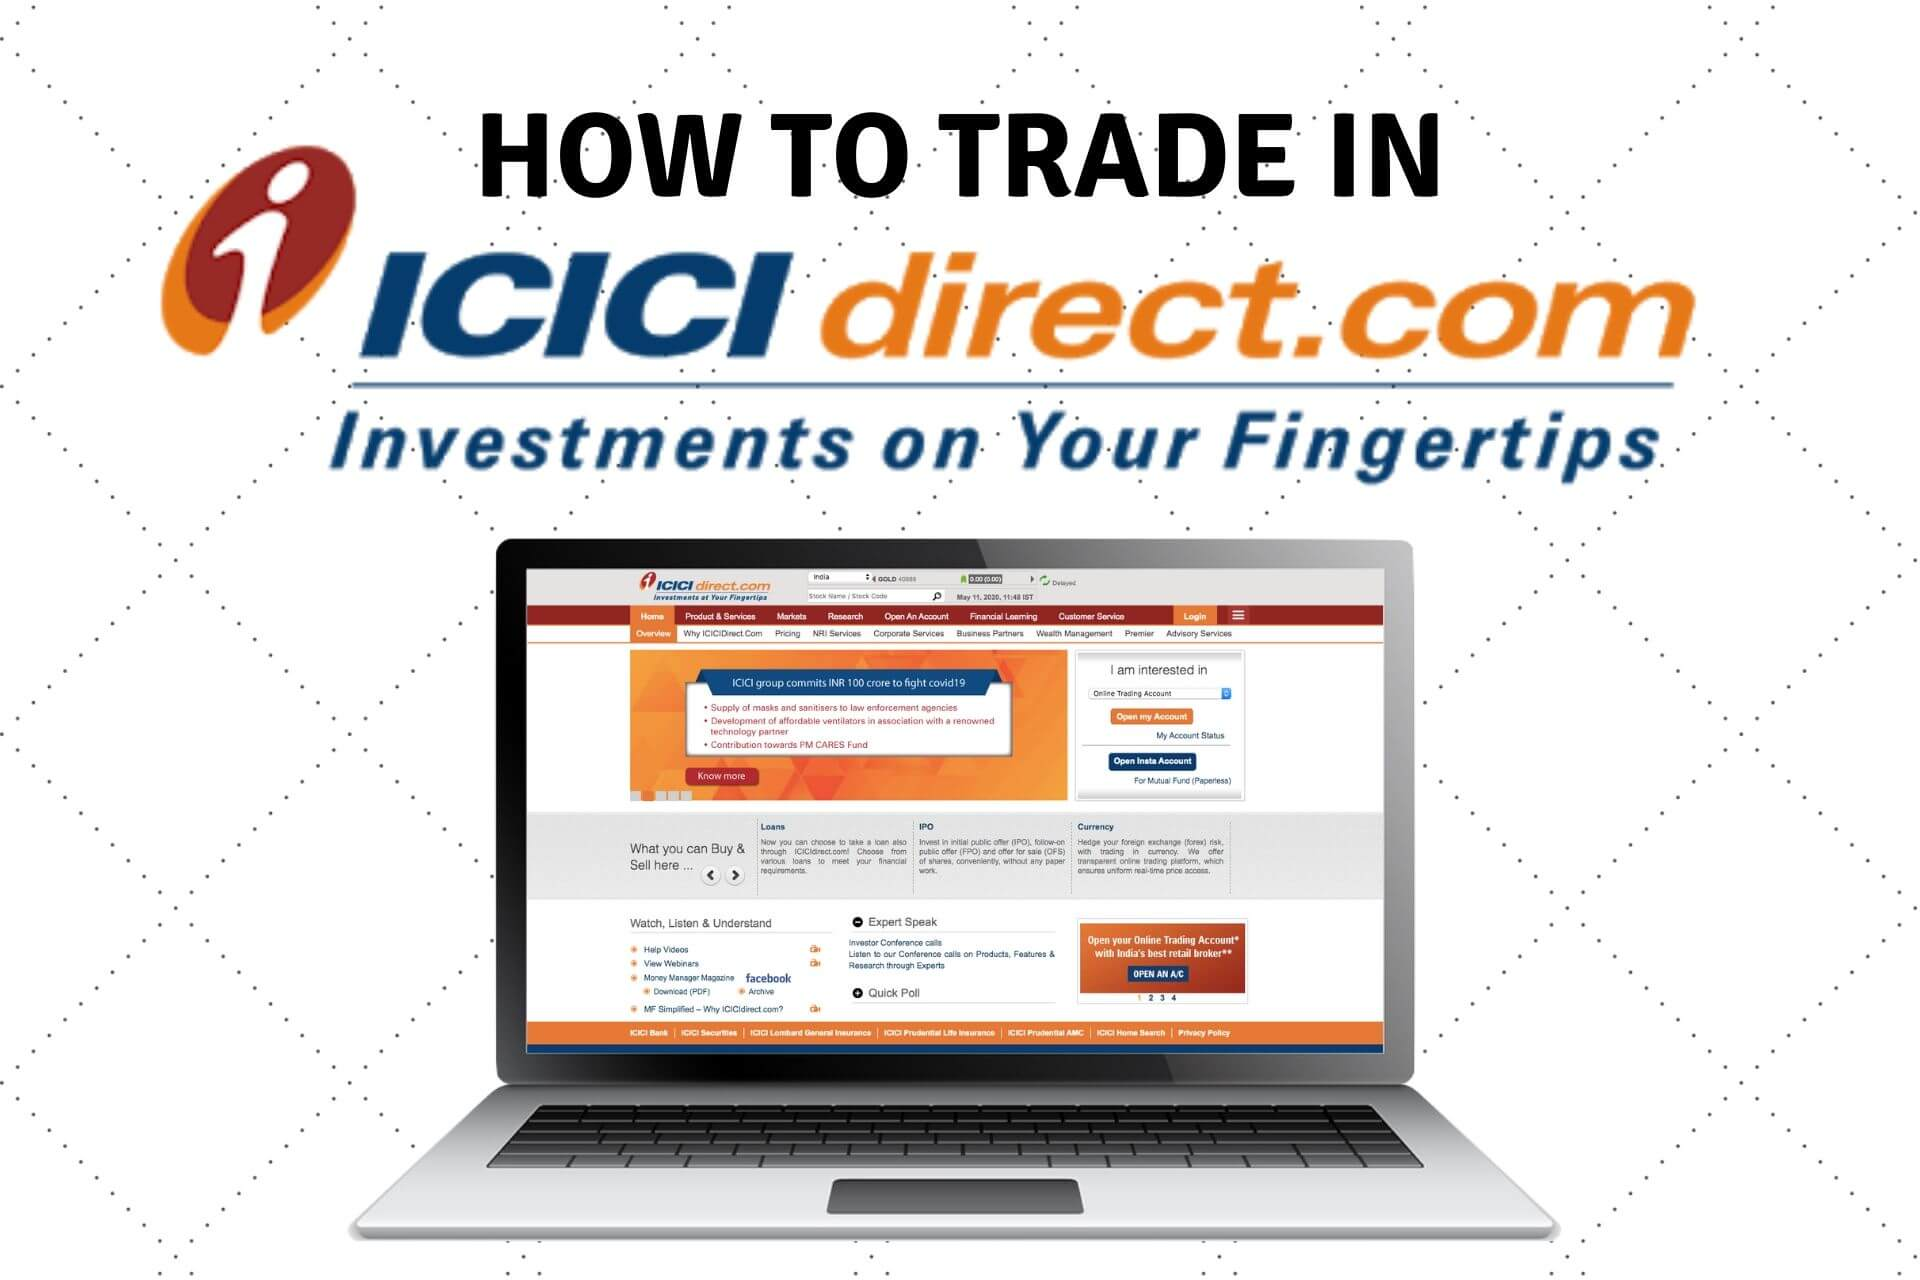 How to trade in ICICI Direct? Buy/Sell Stocks